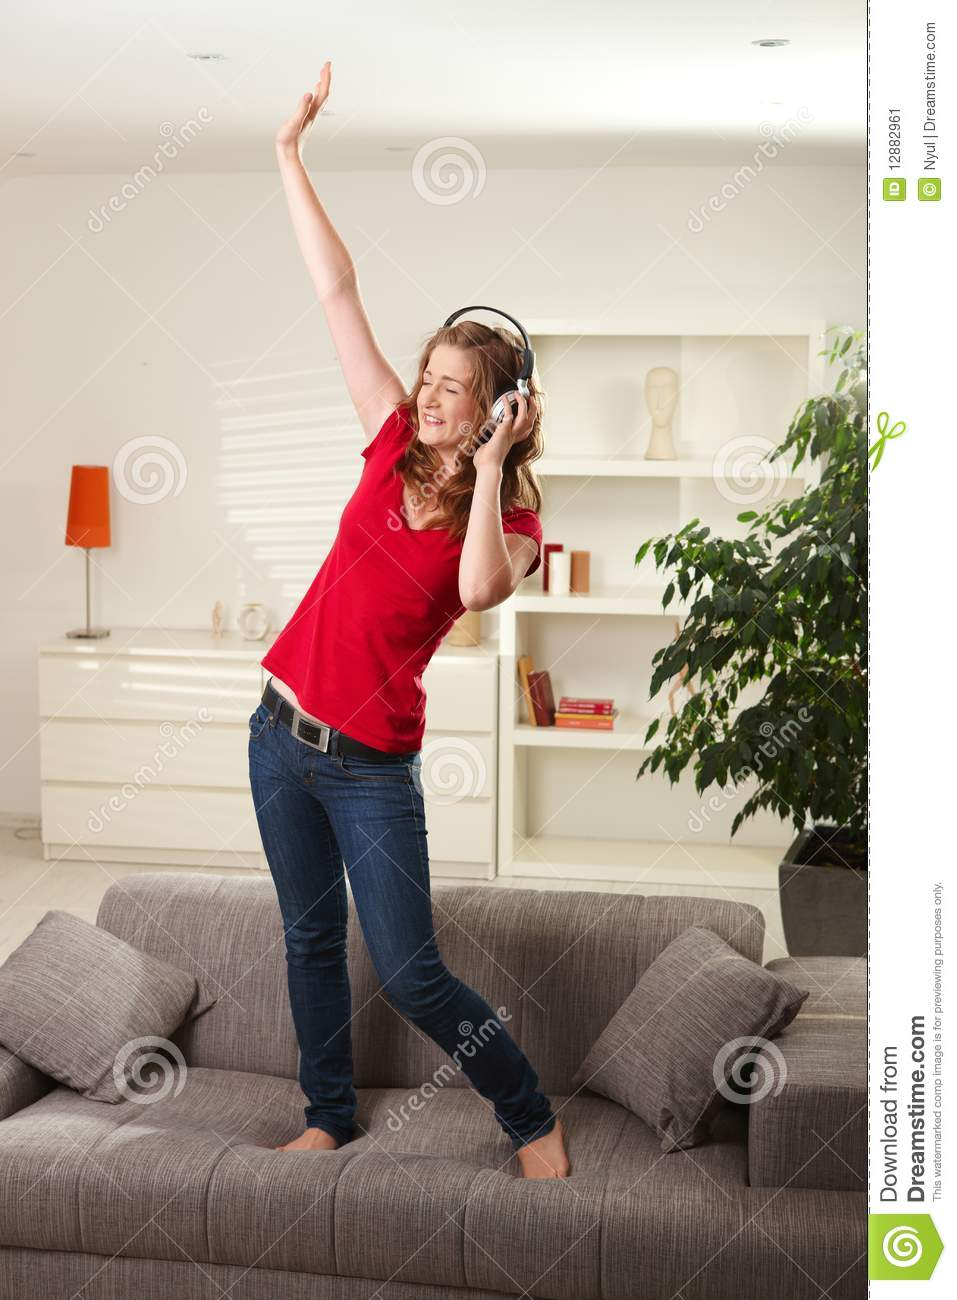 images of living room with red sofa daybed uk happy girl dancing on couch headphones stock image ...